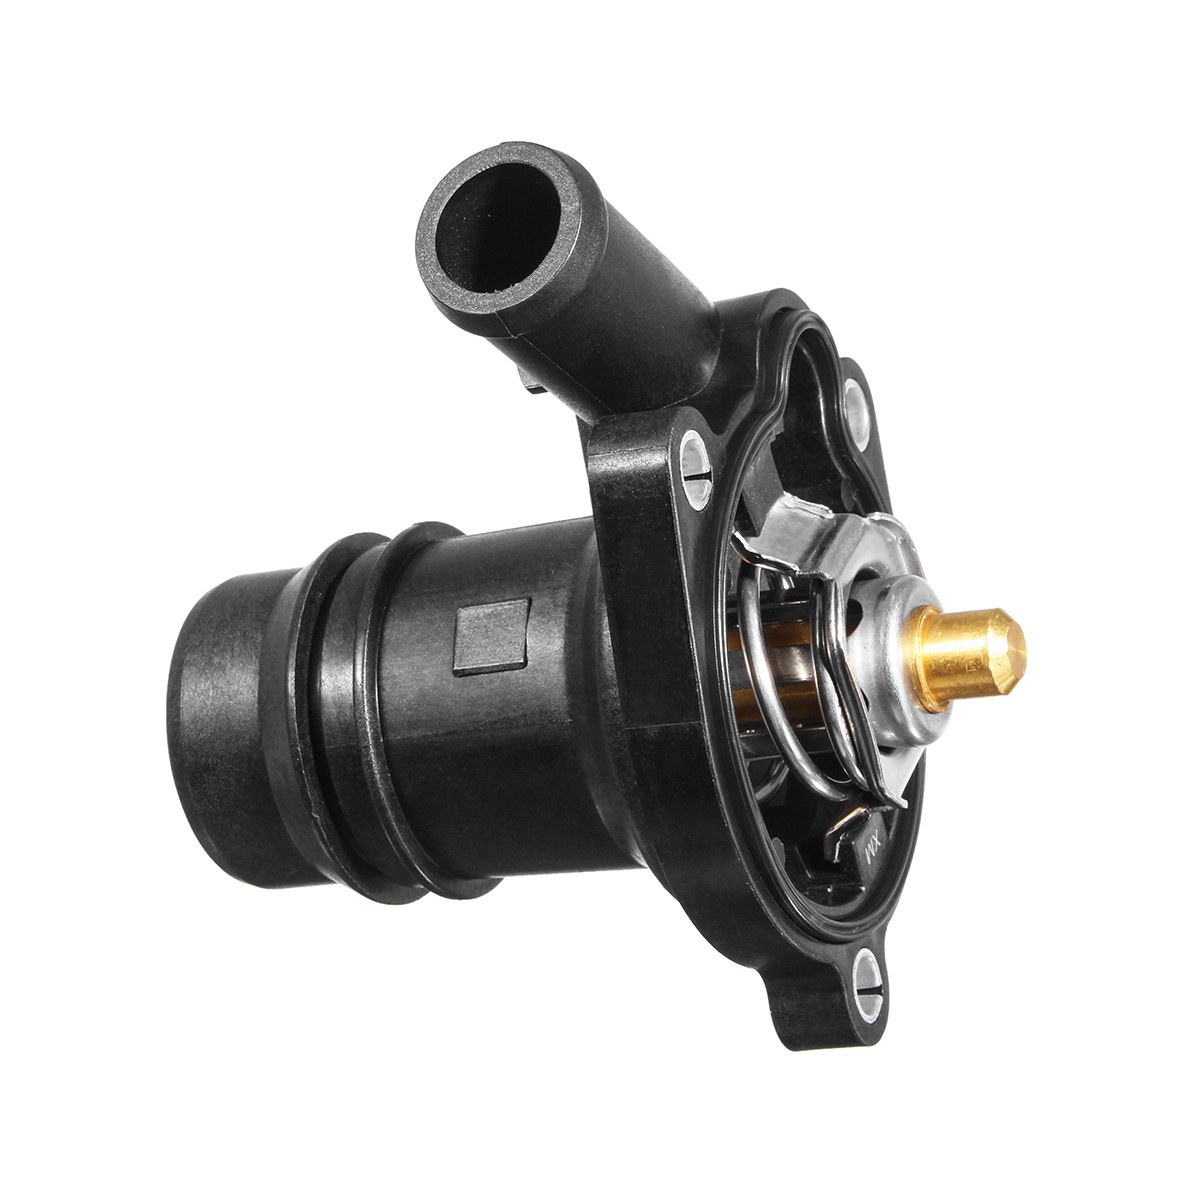 hight resolution of engine coolant thermostat with housing replacement for chevrolet buick cruze sonic encore